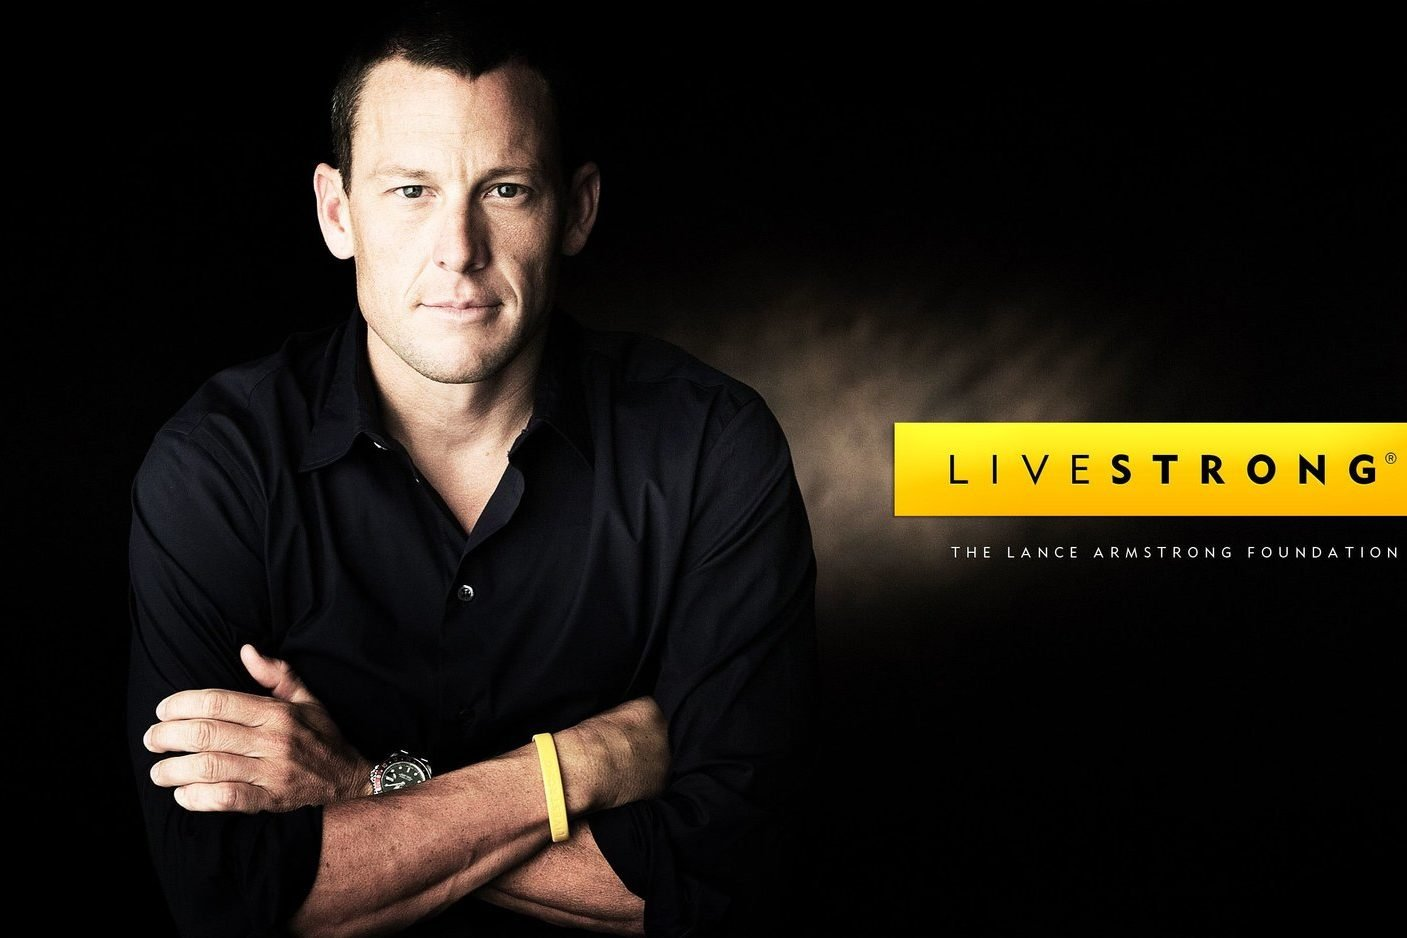 Lance Armstrong beat cancer